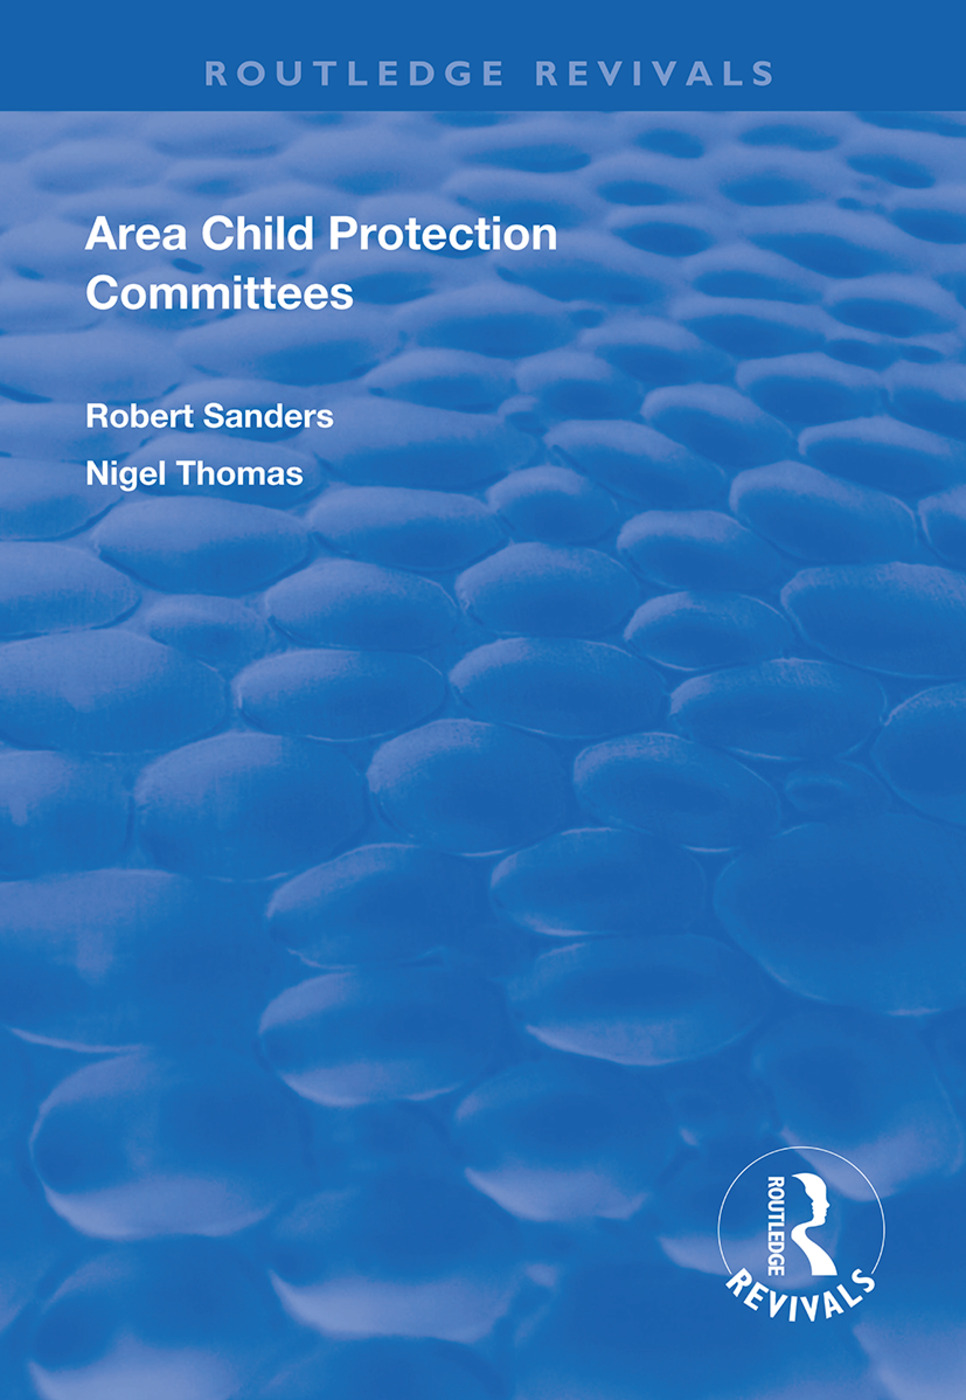 Area Child Protection Committees